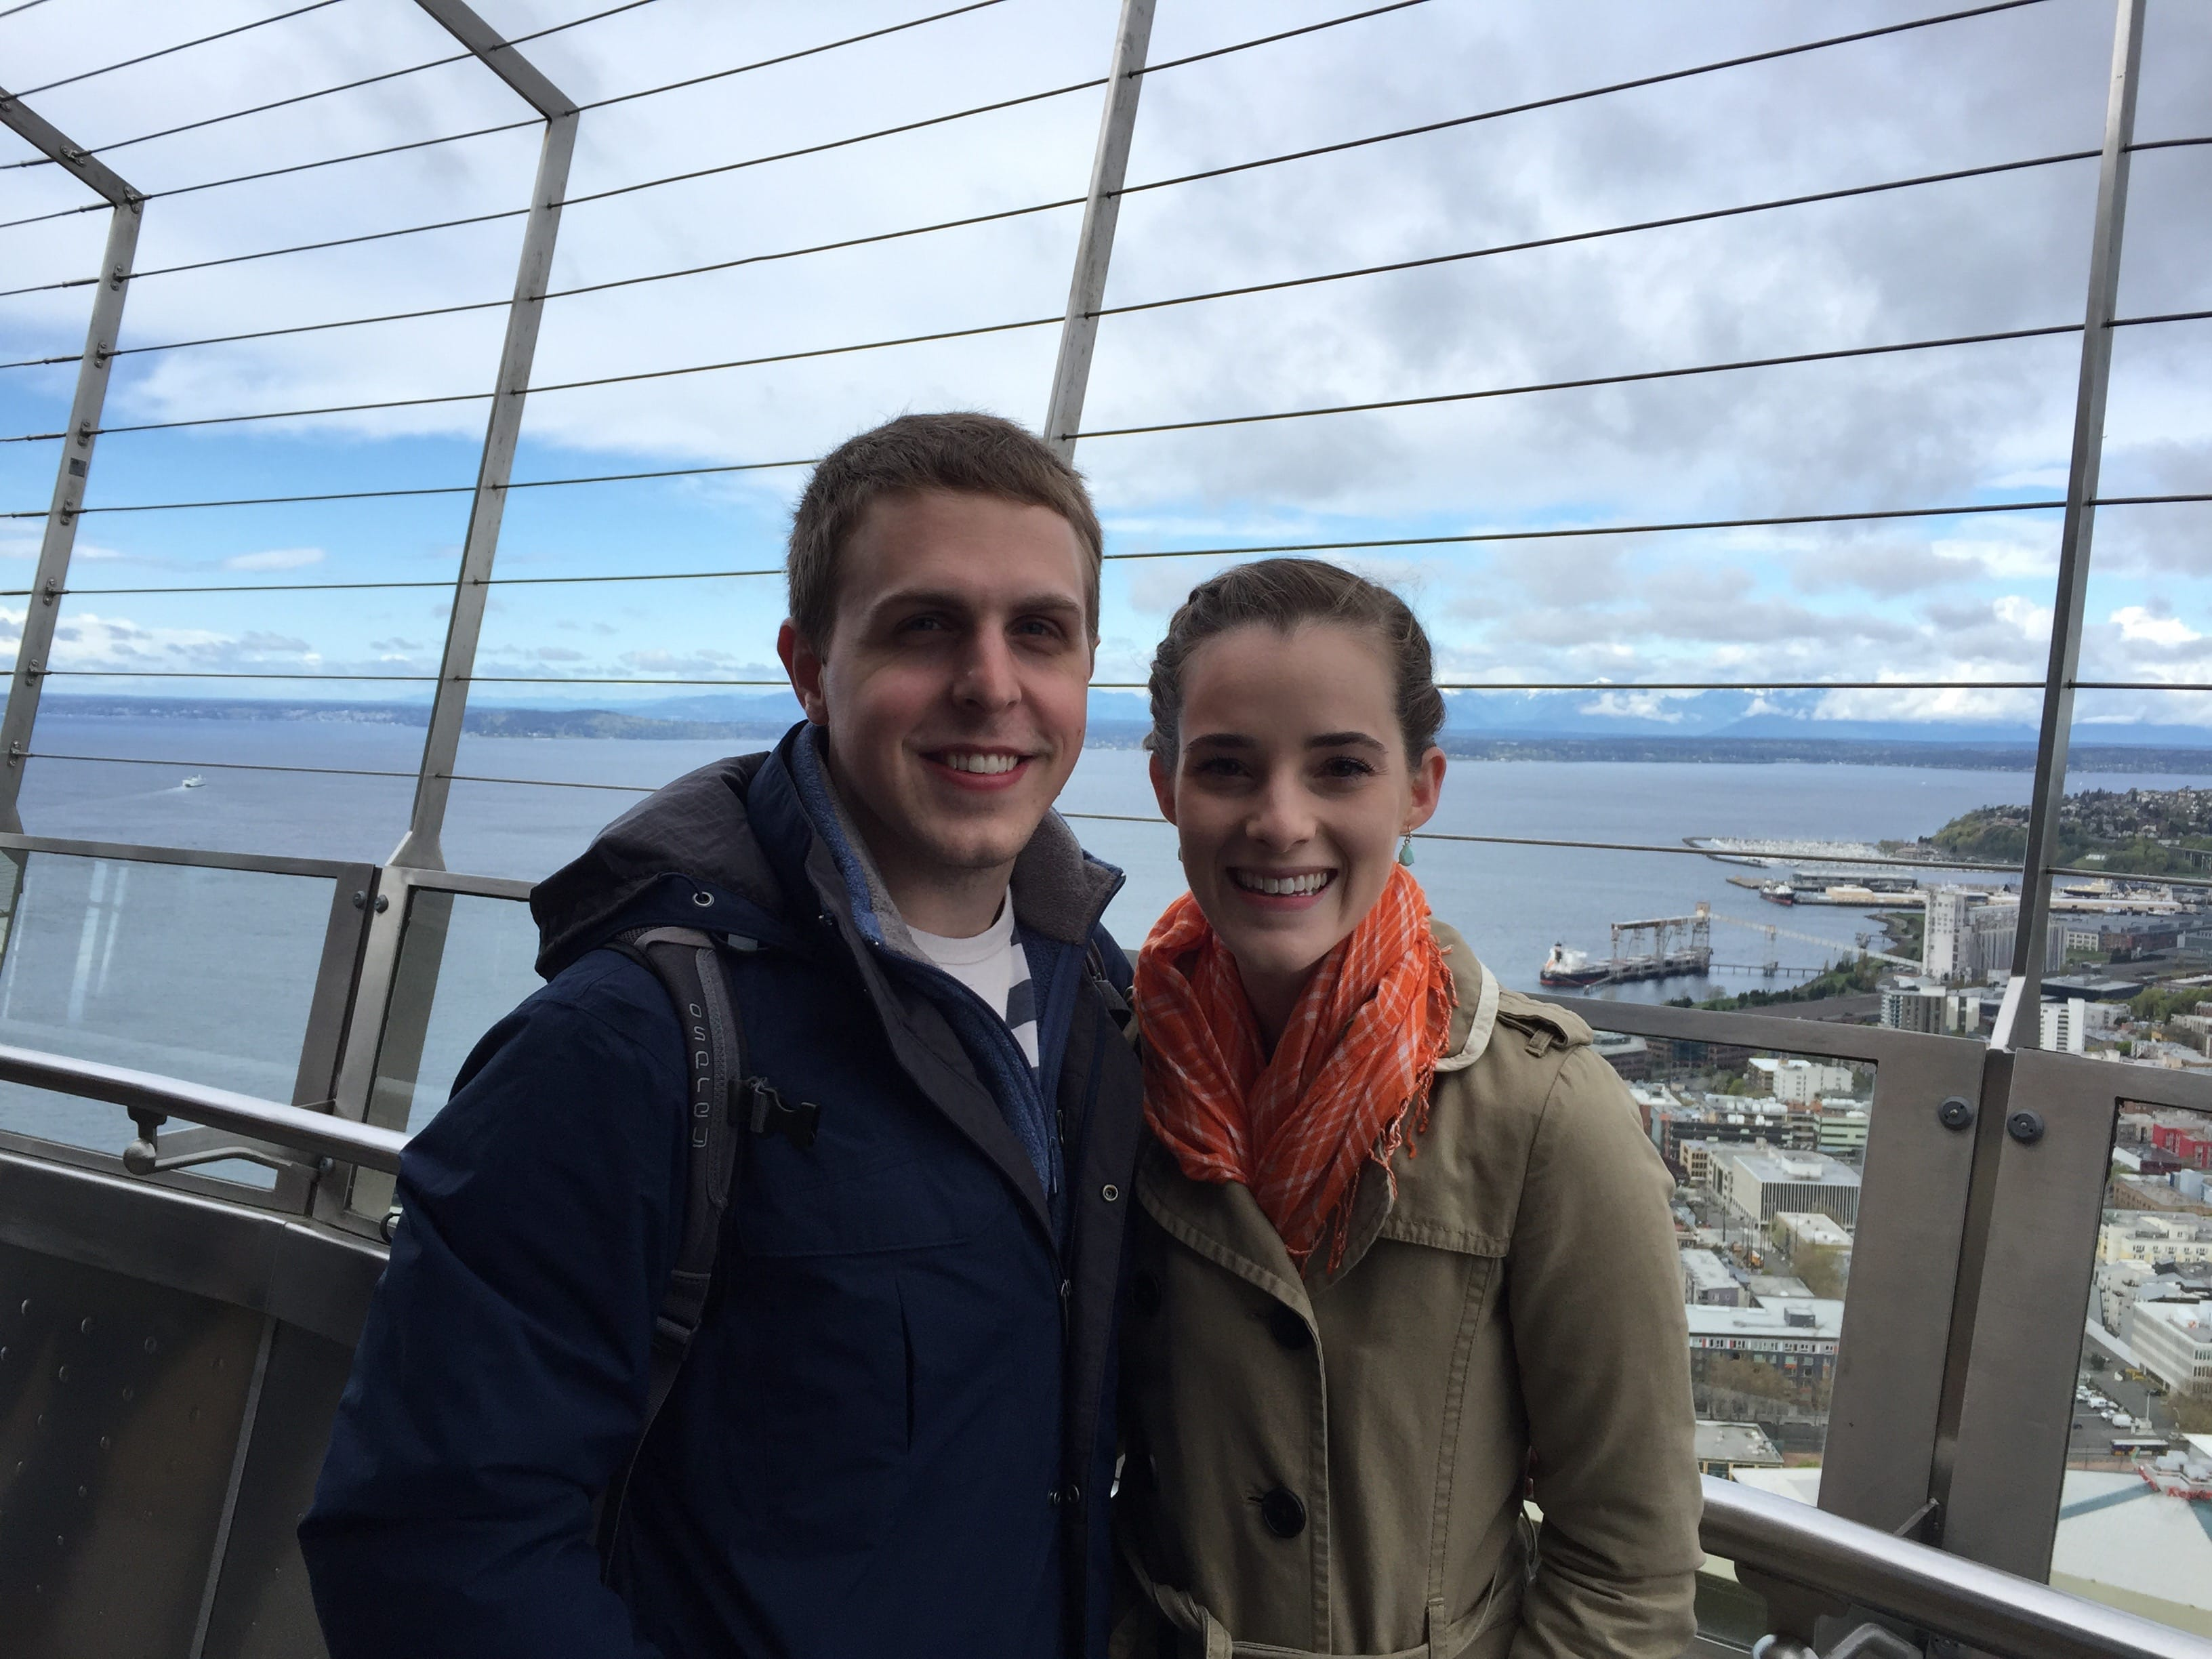 We went to the top of the Space Needle and took in the pretty sweet views from the top.